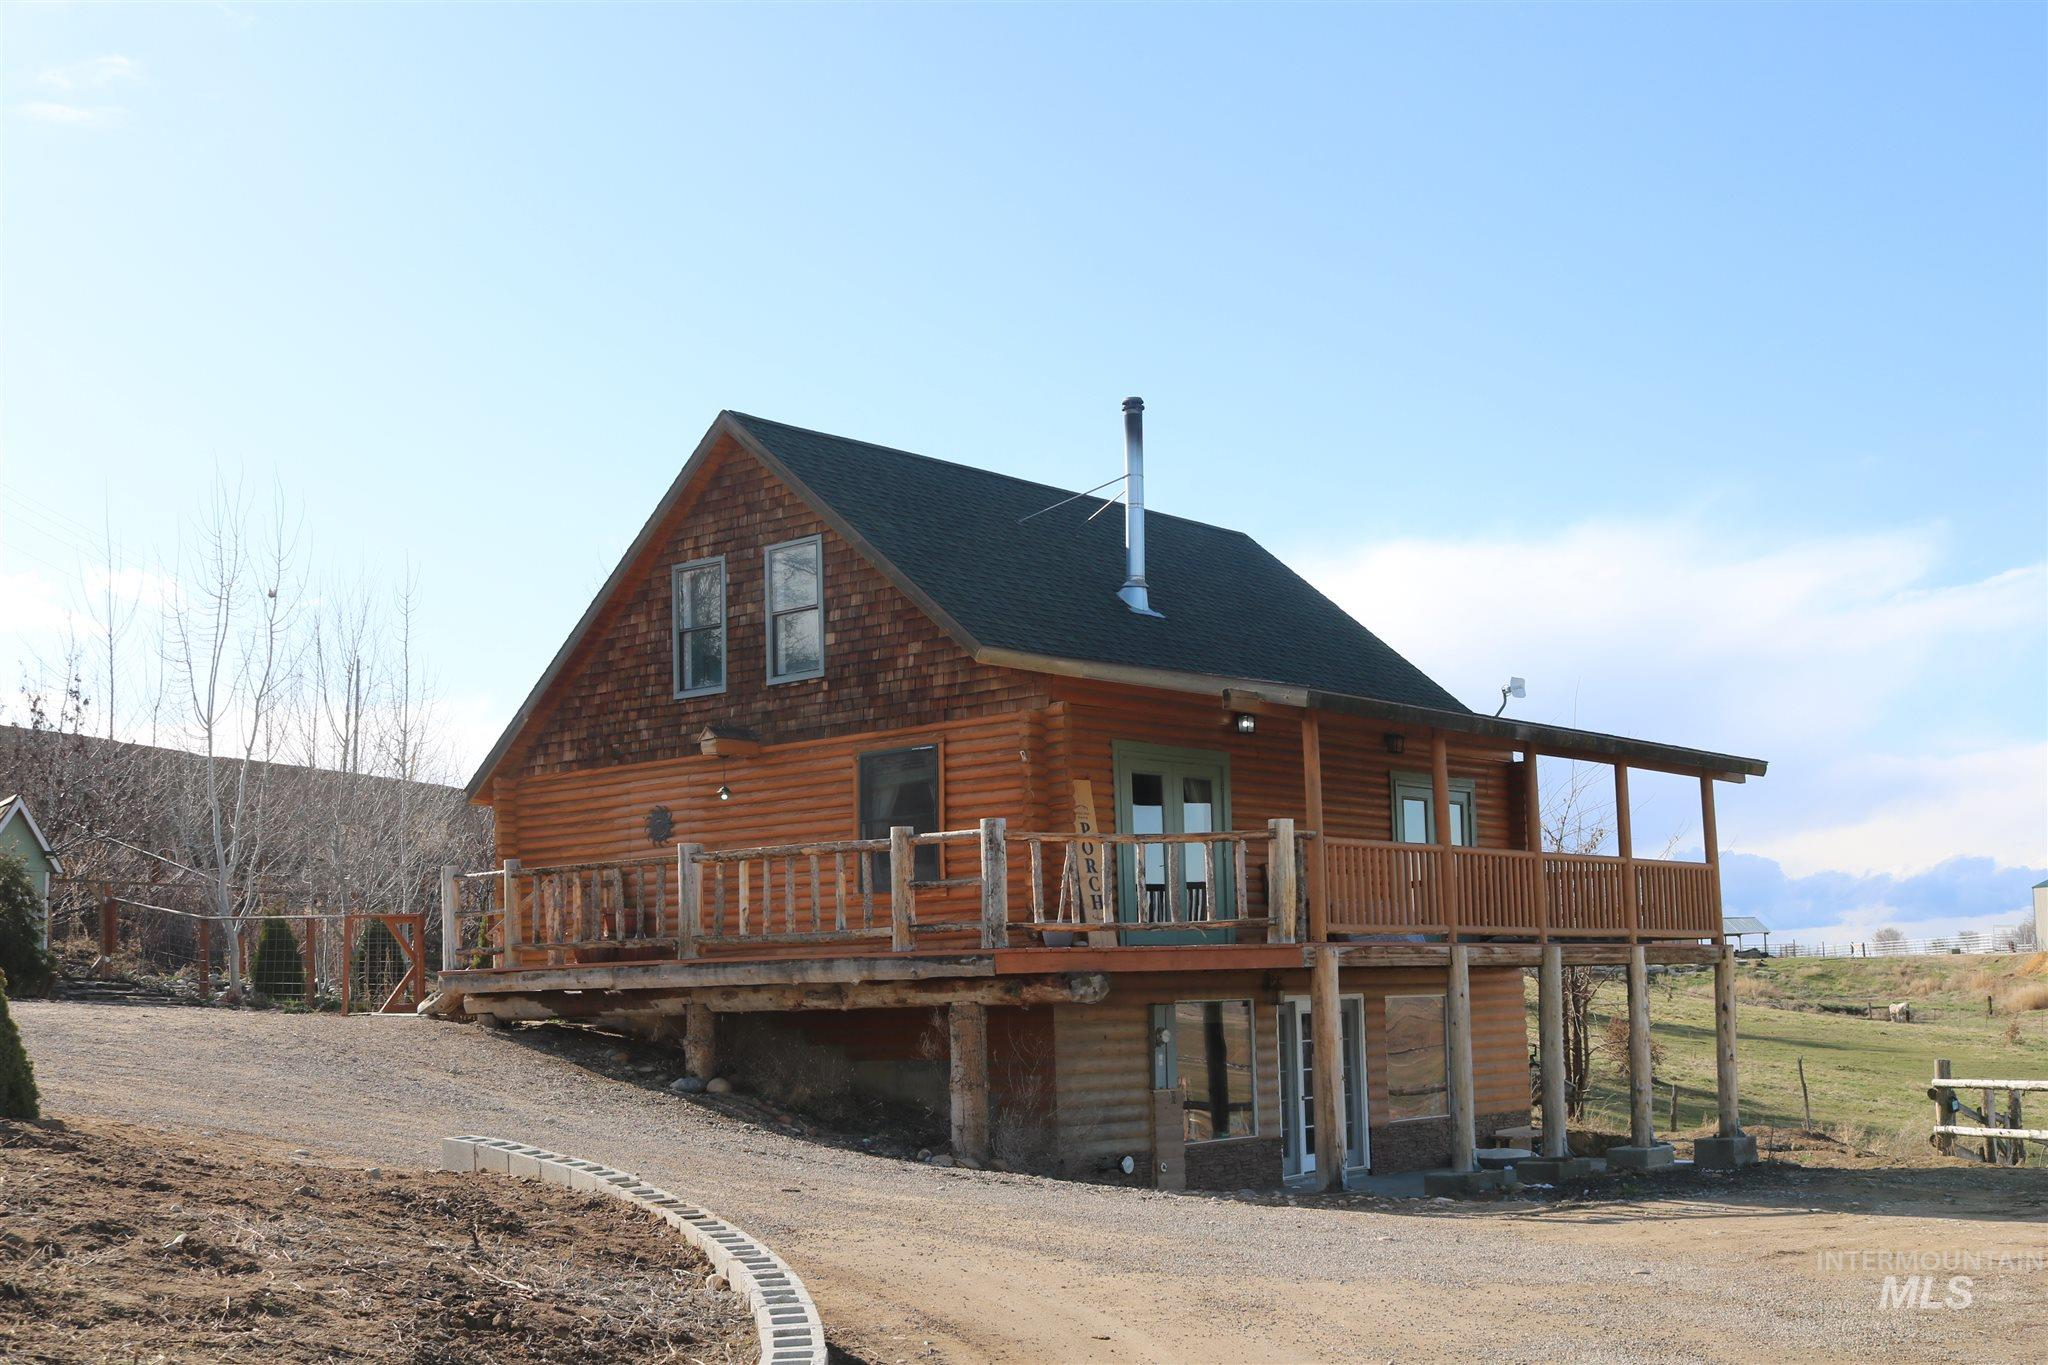 6680 Brill Rd Property Photo - New Plymouth, ID real estate listing